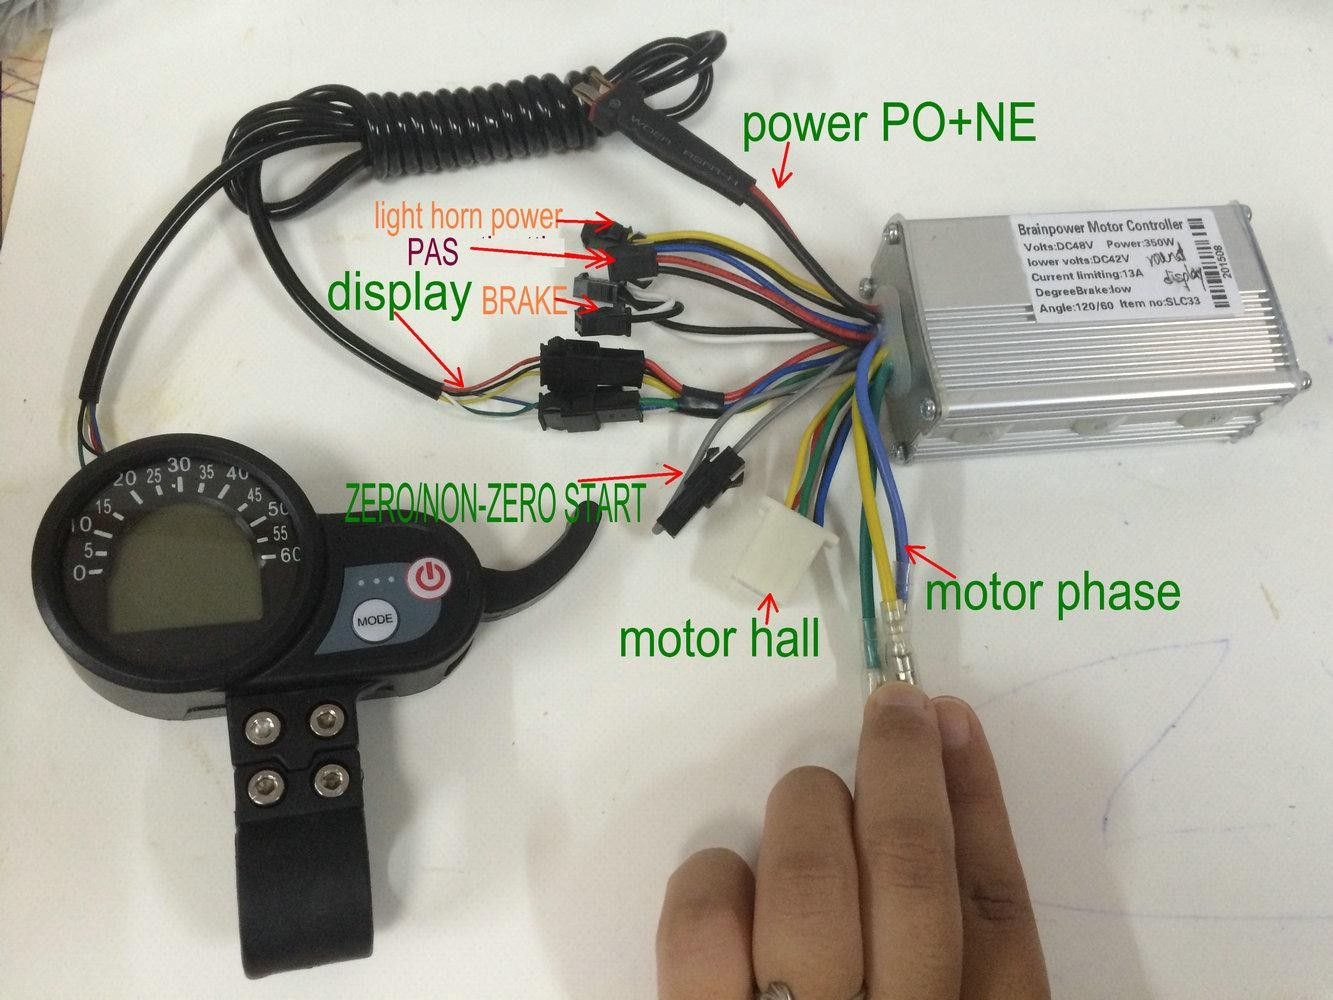 24v36v48v250w350w BLDC controller & LCD display with throttle electric bike moped MTB scooter parts colored or blue screen